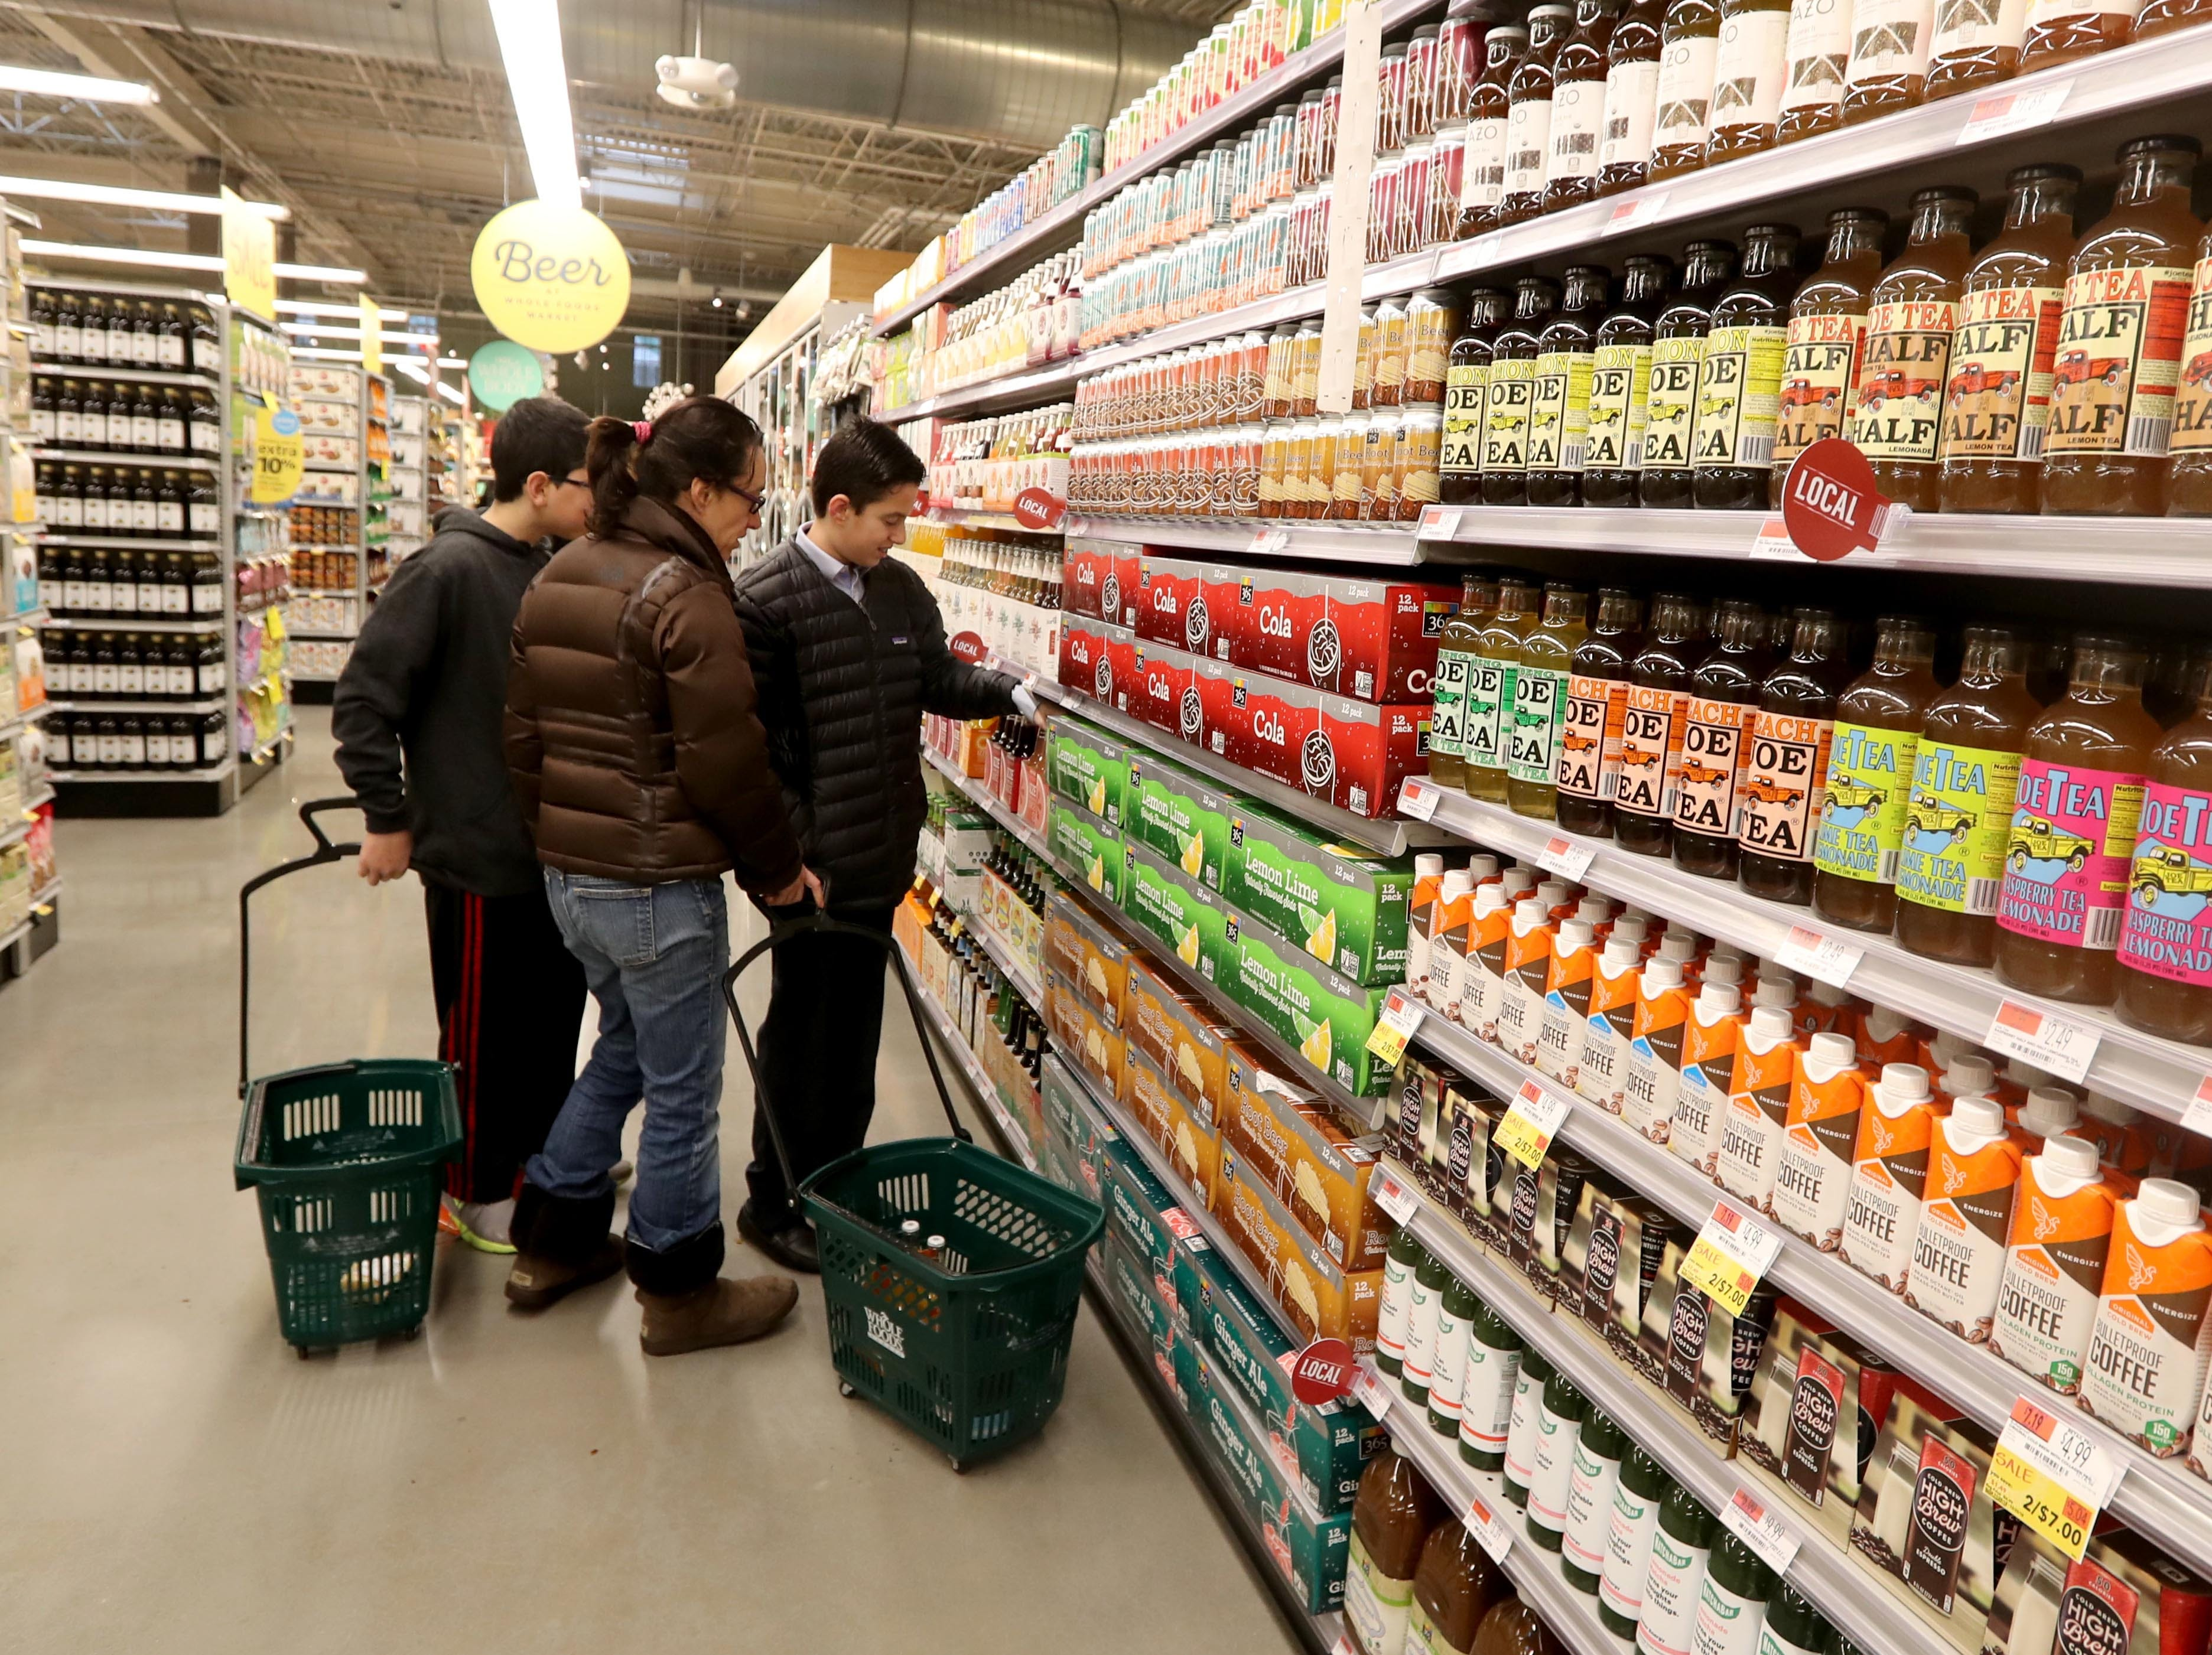 Stacy Gross, her son, Max, 13, and Aaron Silver, 13, shop for beverages in new Whole Foods in Chappaqua shortly after the grand opening of the supermarket at Chappaqua Crossing  Dec. 15, 2018. The 40,000 square foot store opened to shoppers on the site of the formers Readers Digest headquarters. The New Castle Town Board and Planning Board approved a temporary traffic plan for the Route 117-Roaring Brook Road intersection that allowed the store to open.